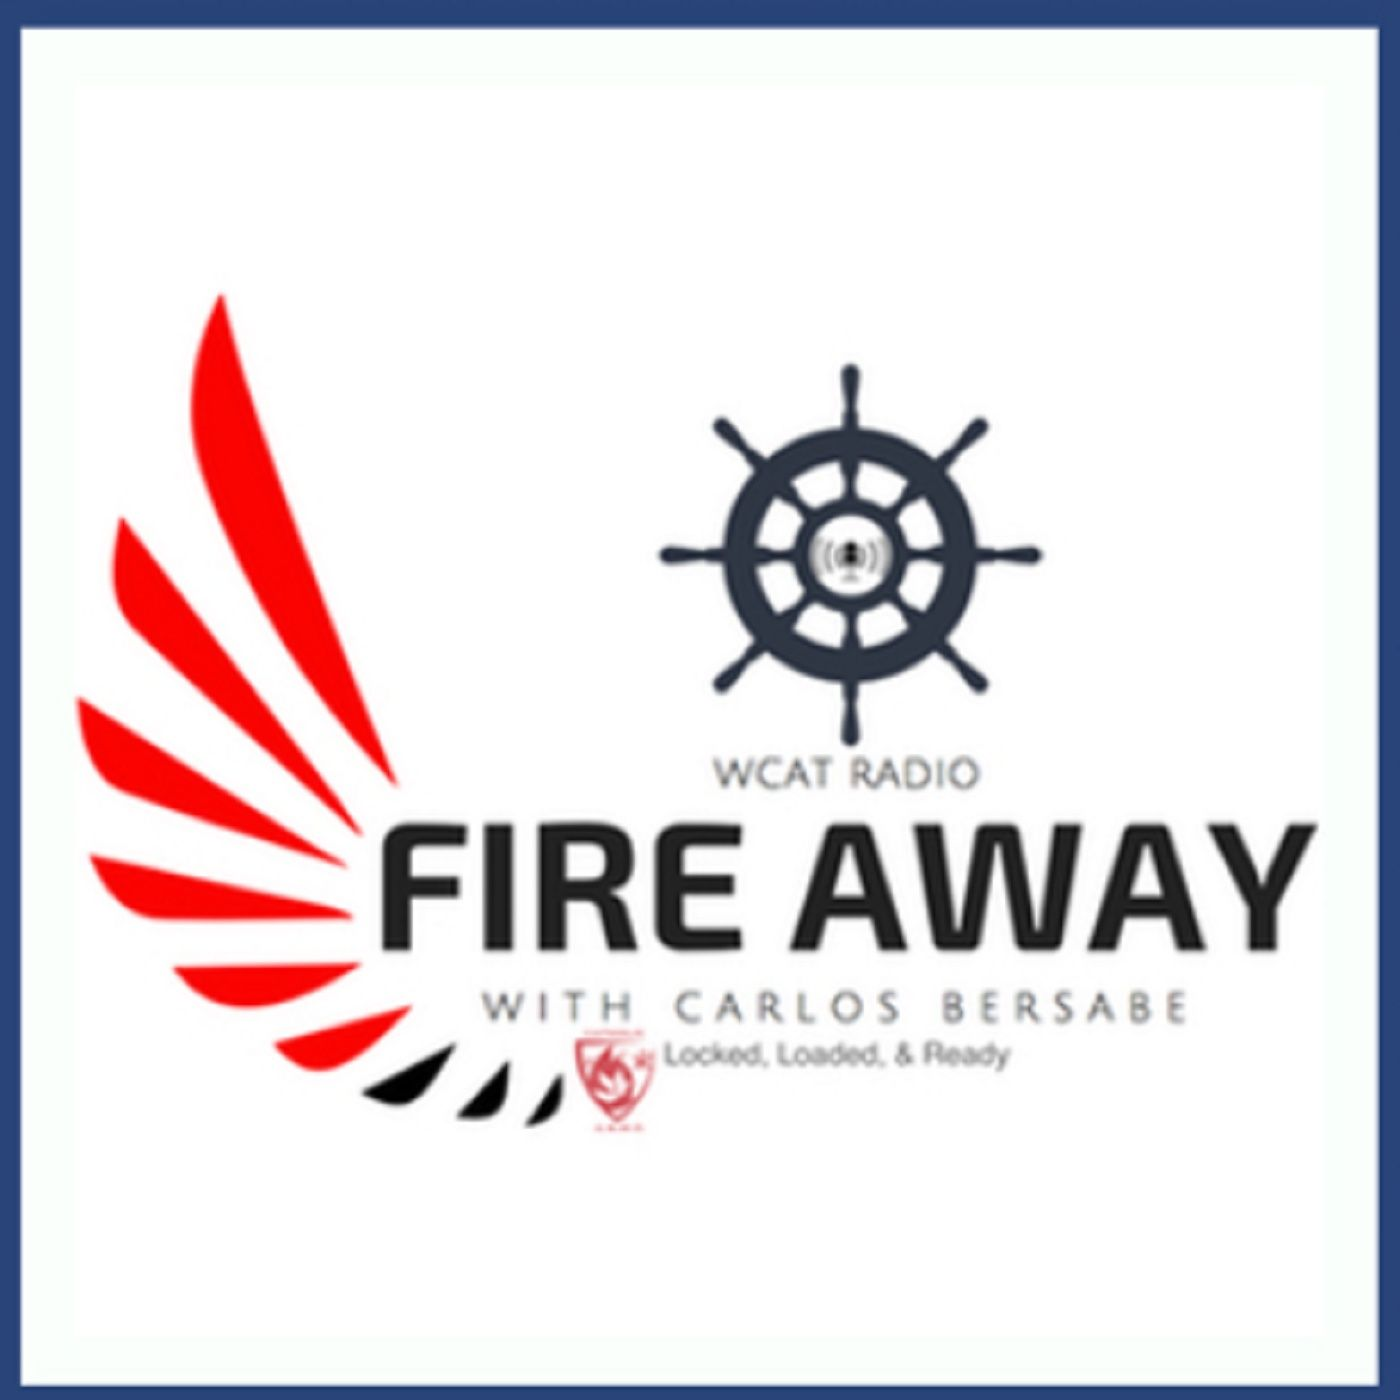 Fire Away 61, Kevin Symonds (https://kevinsymonds.com) joins Carlos Bersabe to talk about Fatima